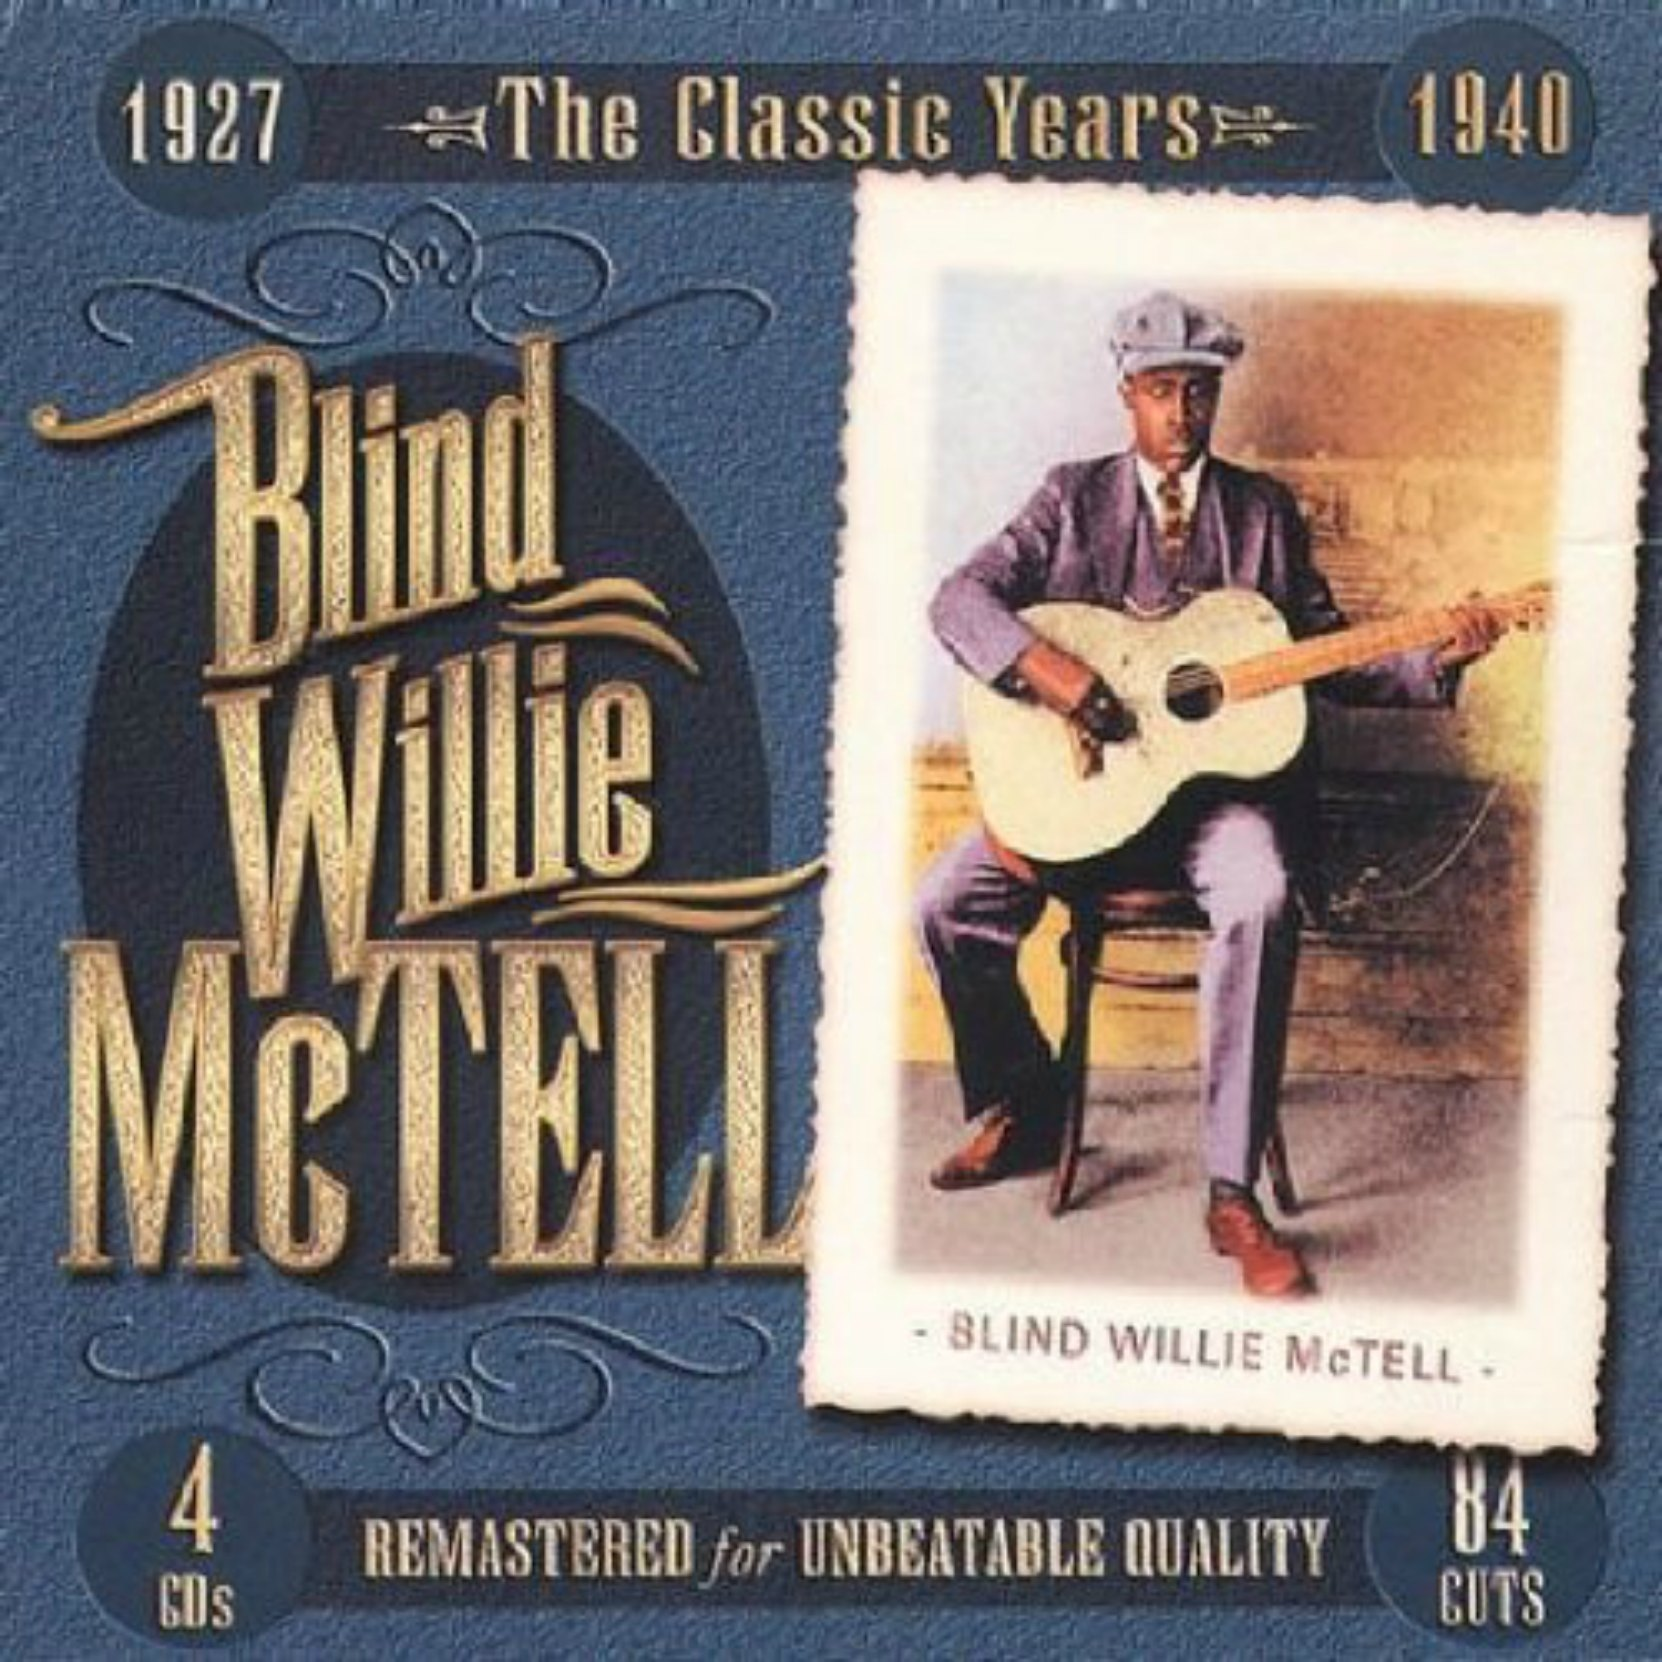 CD cover, Blind Willie McTell-The Classic Years, 1927-1940, a 4 CD, 84 track collection on JSP Records